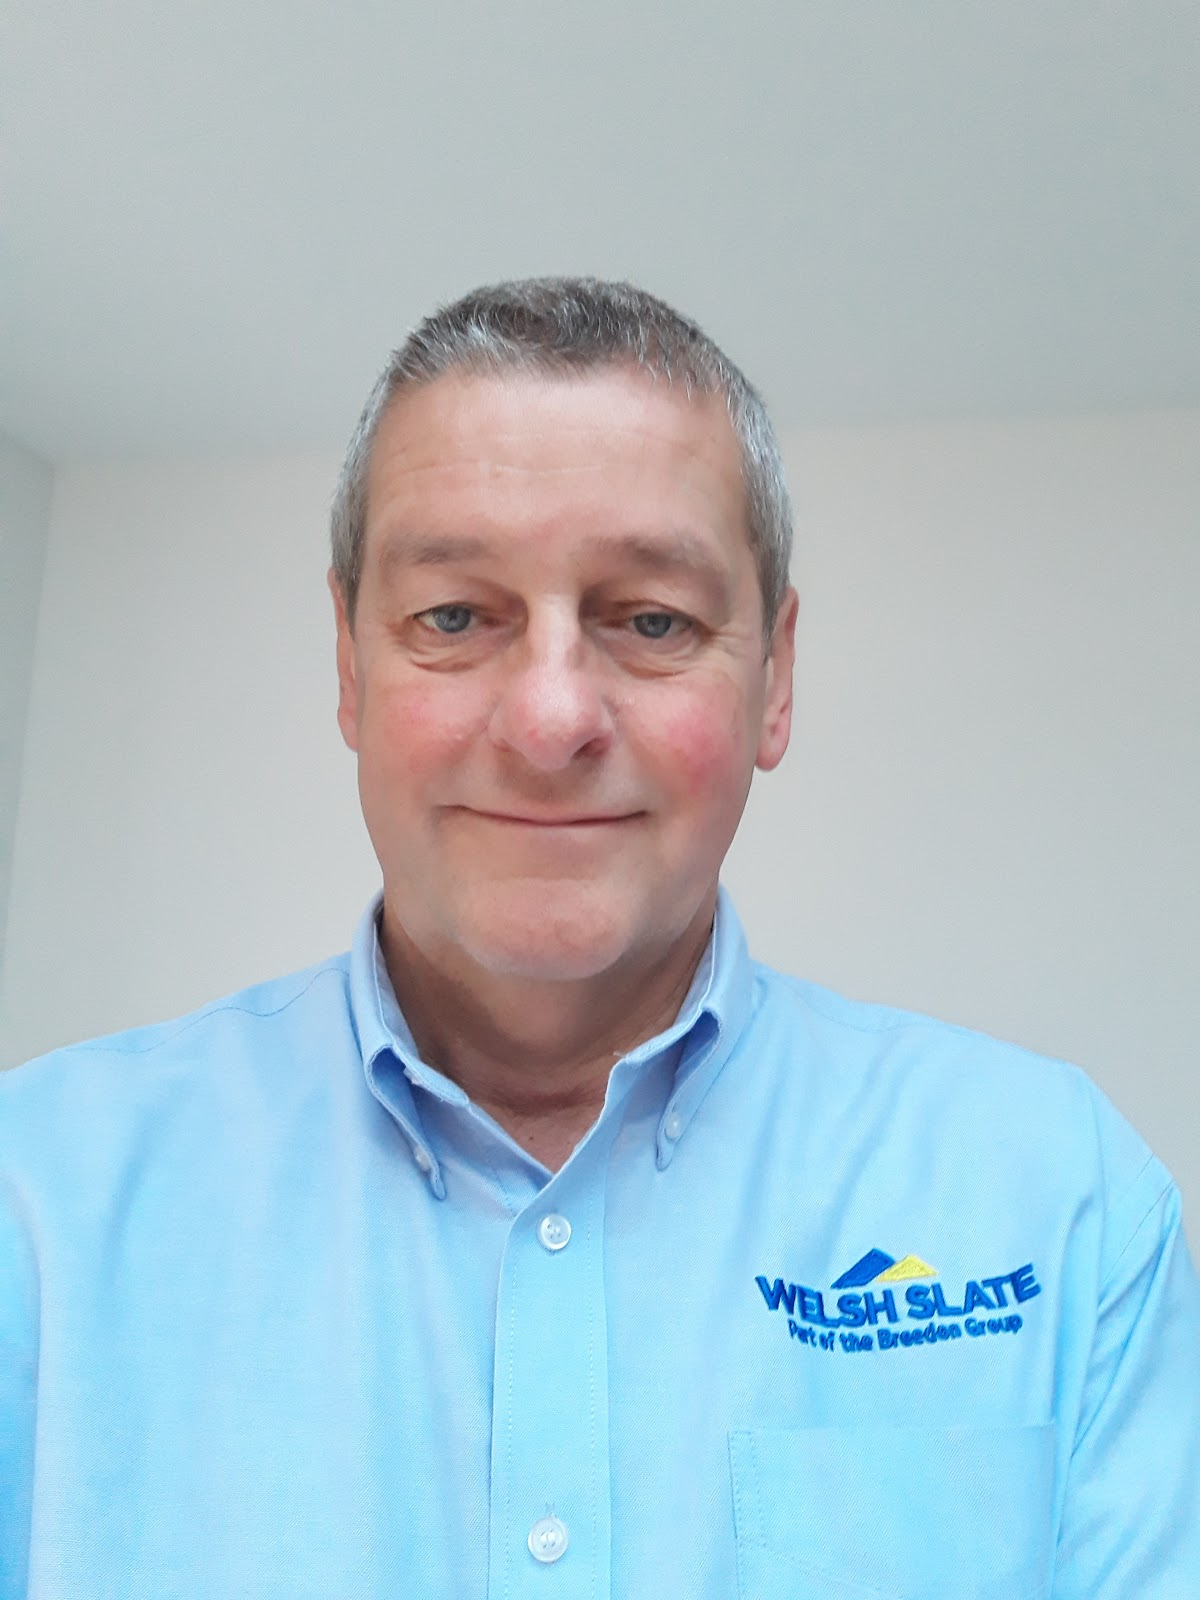 Welsh Slate Appoints New Sales Manager